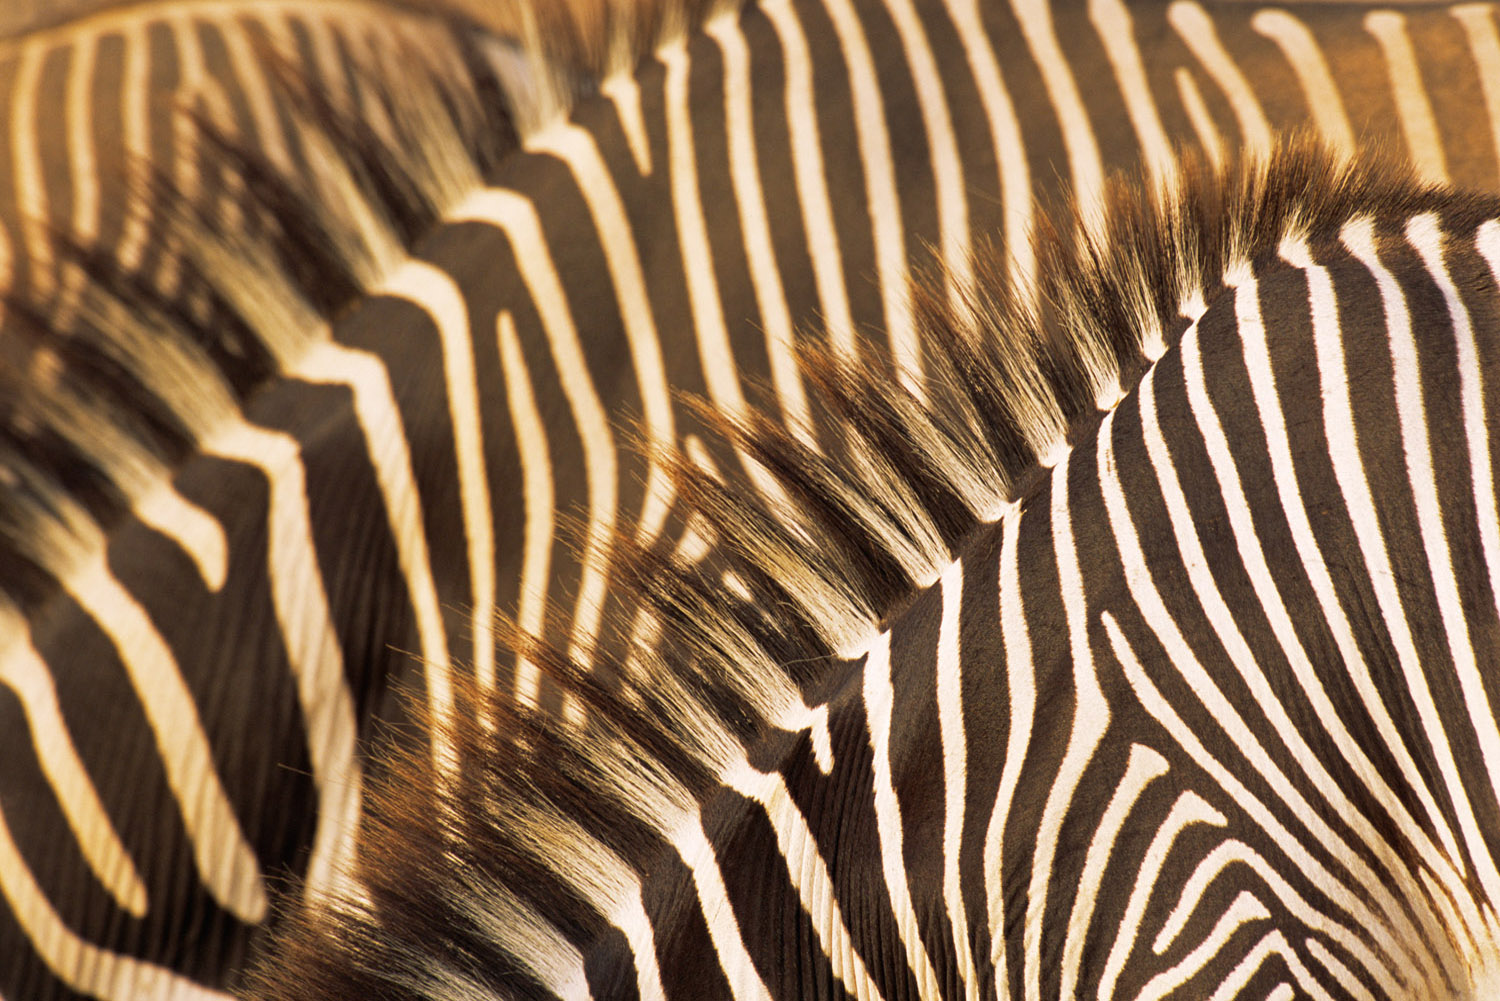 Grévy's zebra stripe patterns, Samburu National Reserve, Kenya